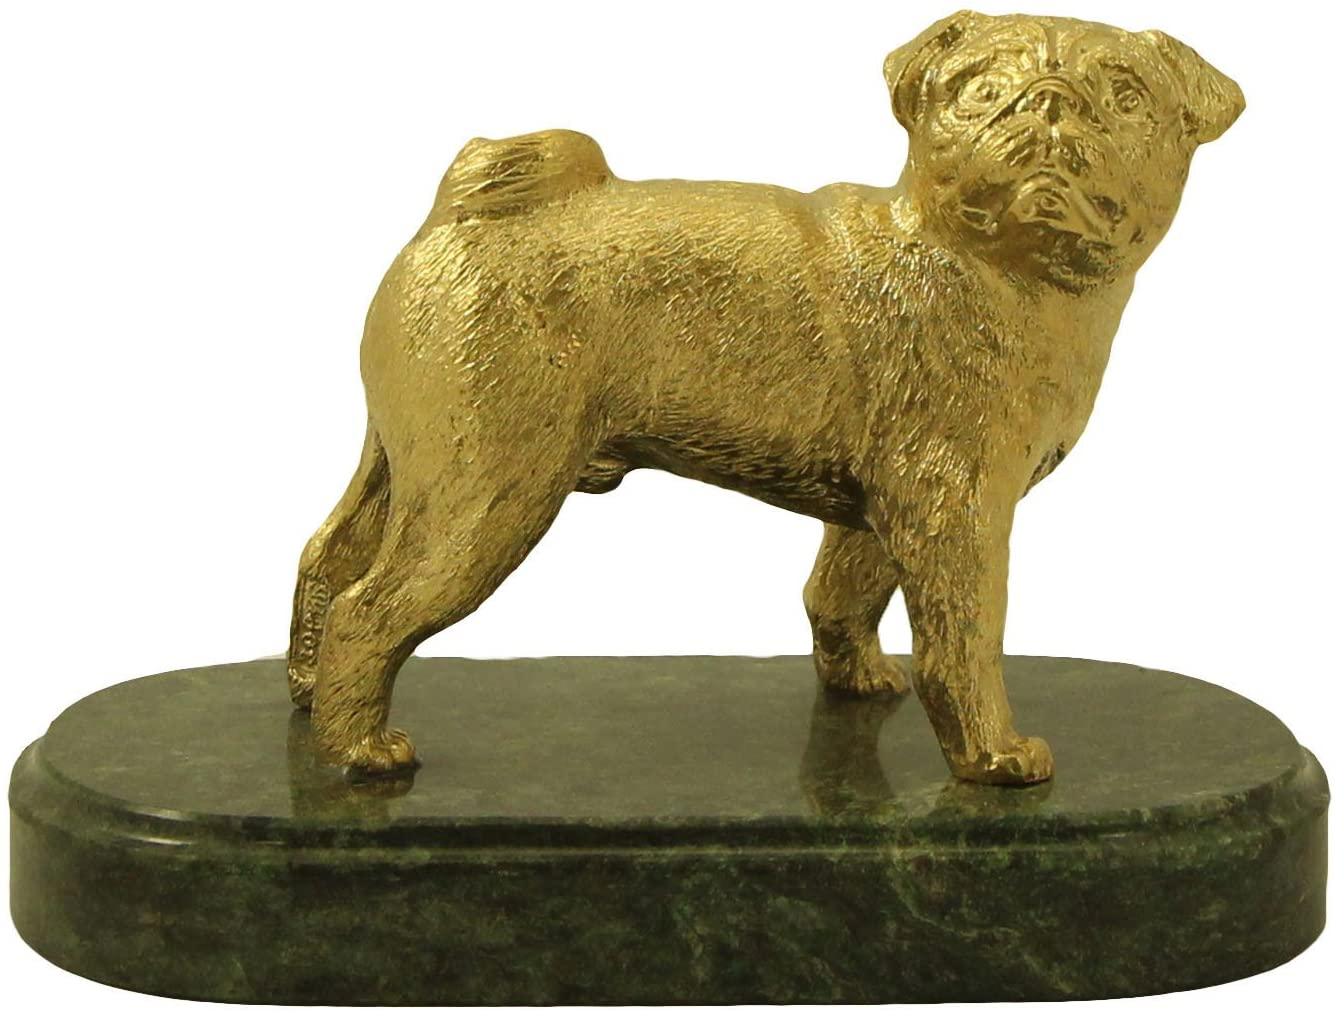 CTOC Pug Bronze Statue Handmade Figurine on Natural Ural Rock Original Paperweight Super Present and Home Decoration